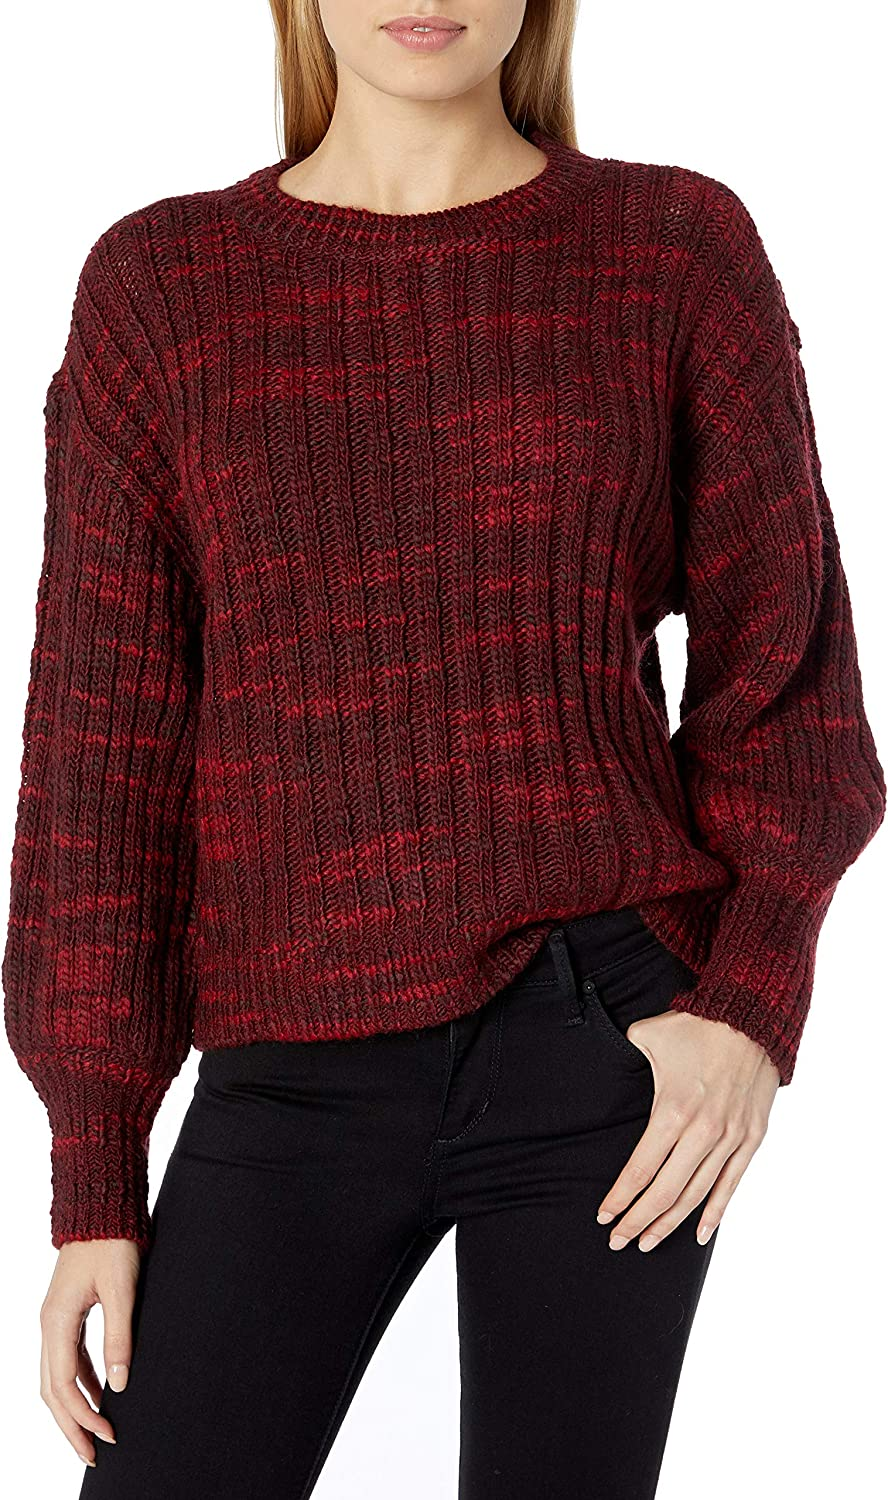 Parker Women's Caims Marled Our shop OFFers the best service Sweater Fashion Sales of SALE items from new works